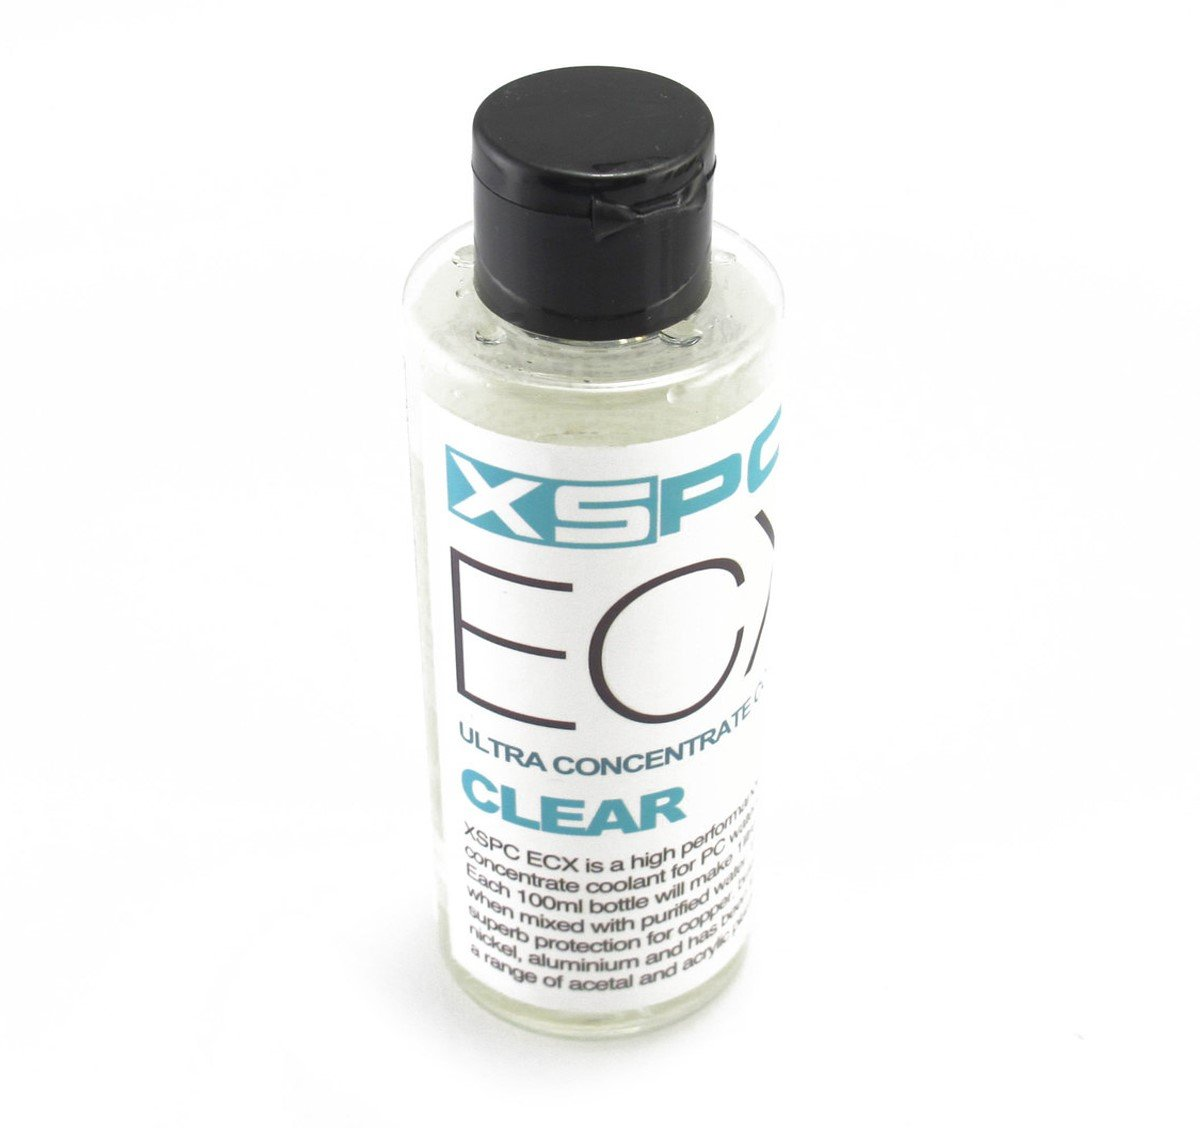 XSPC ECX Ultra Concentrate Coolant, Clear